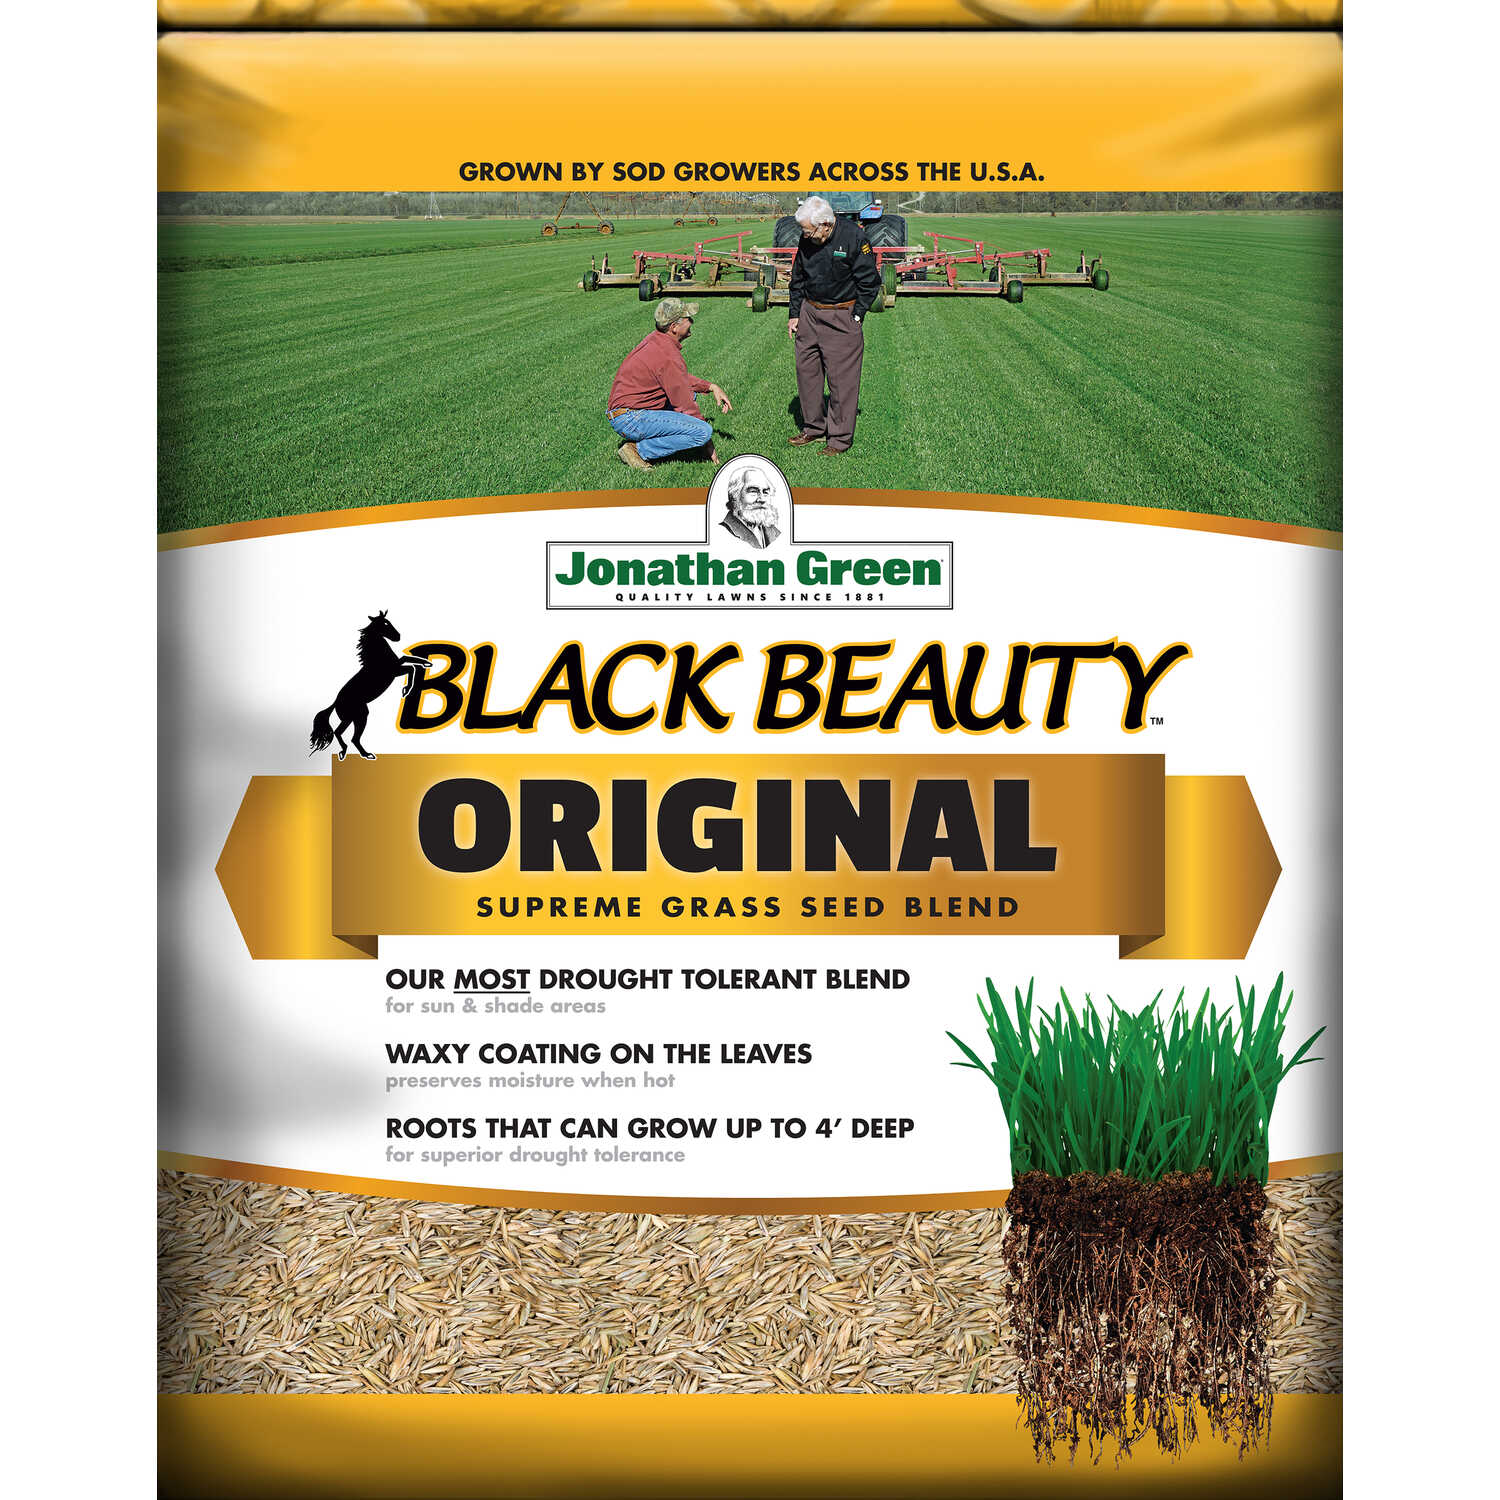 Jonathan Green  Black Beauty Original  Tall Fescue  Grass Seed  5 lb.